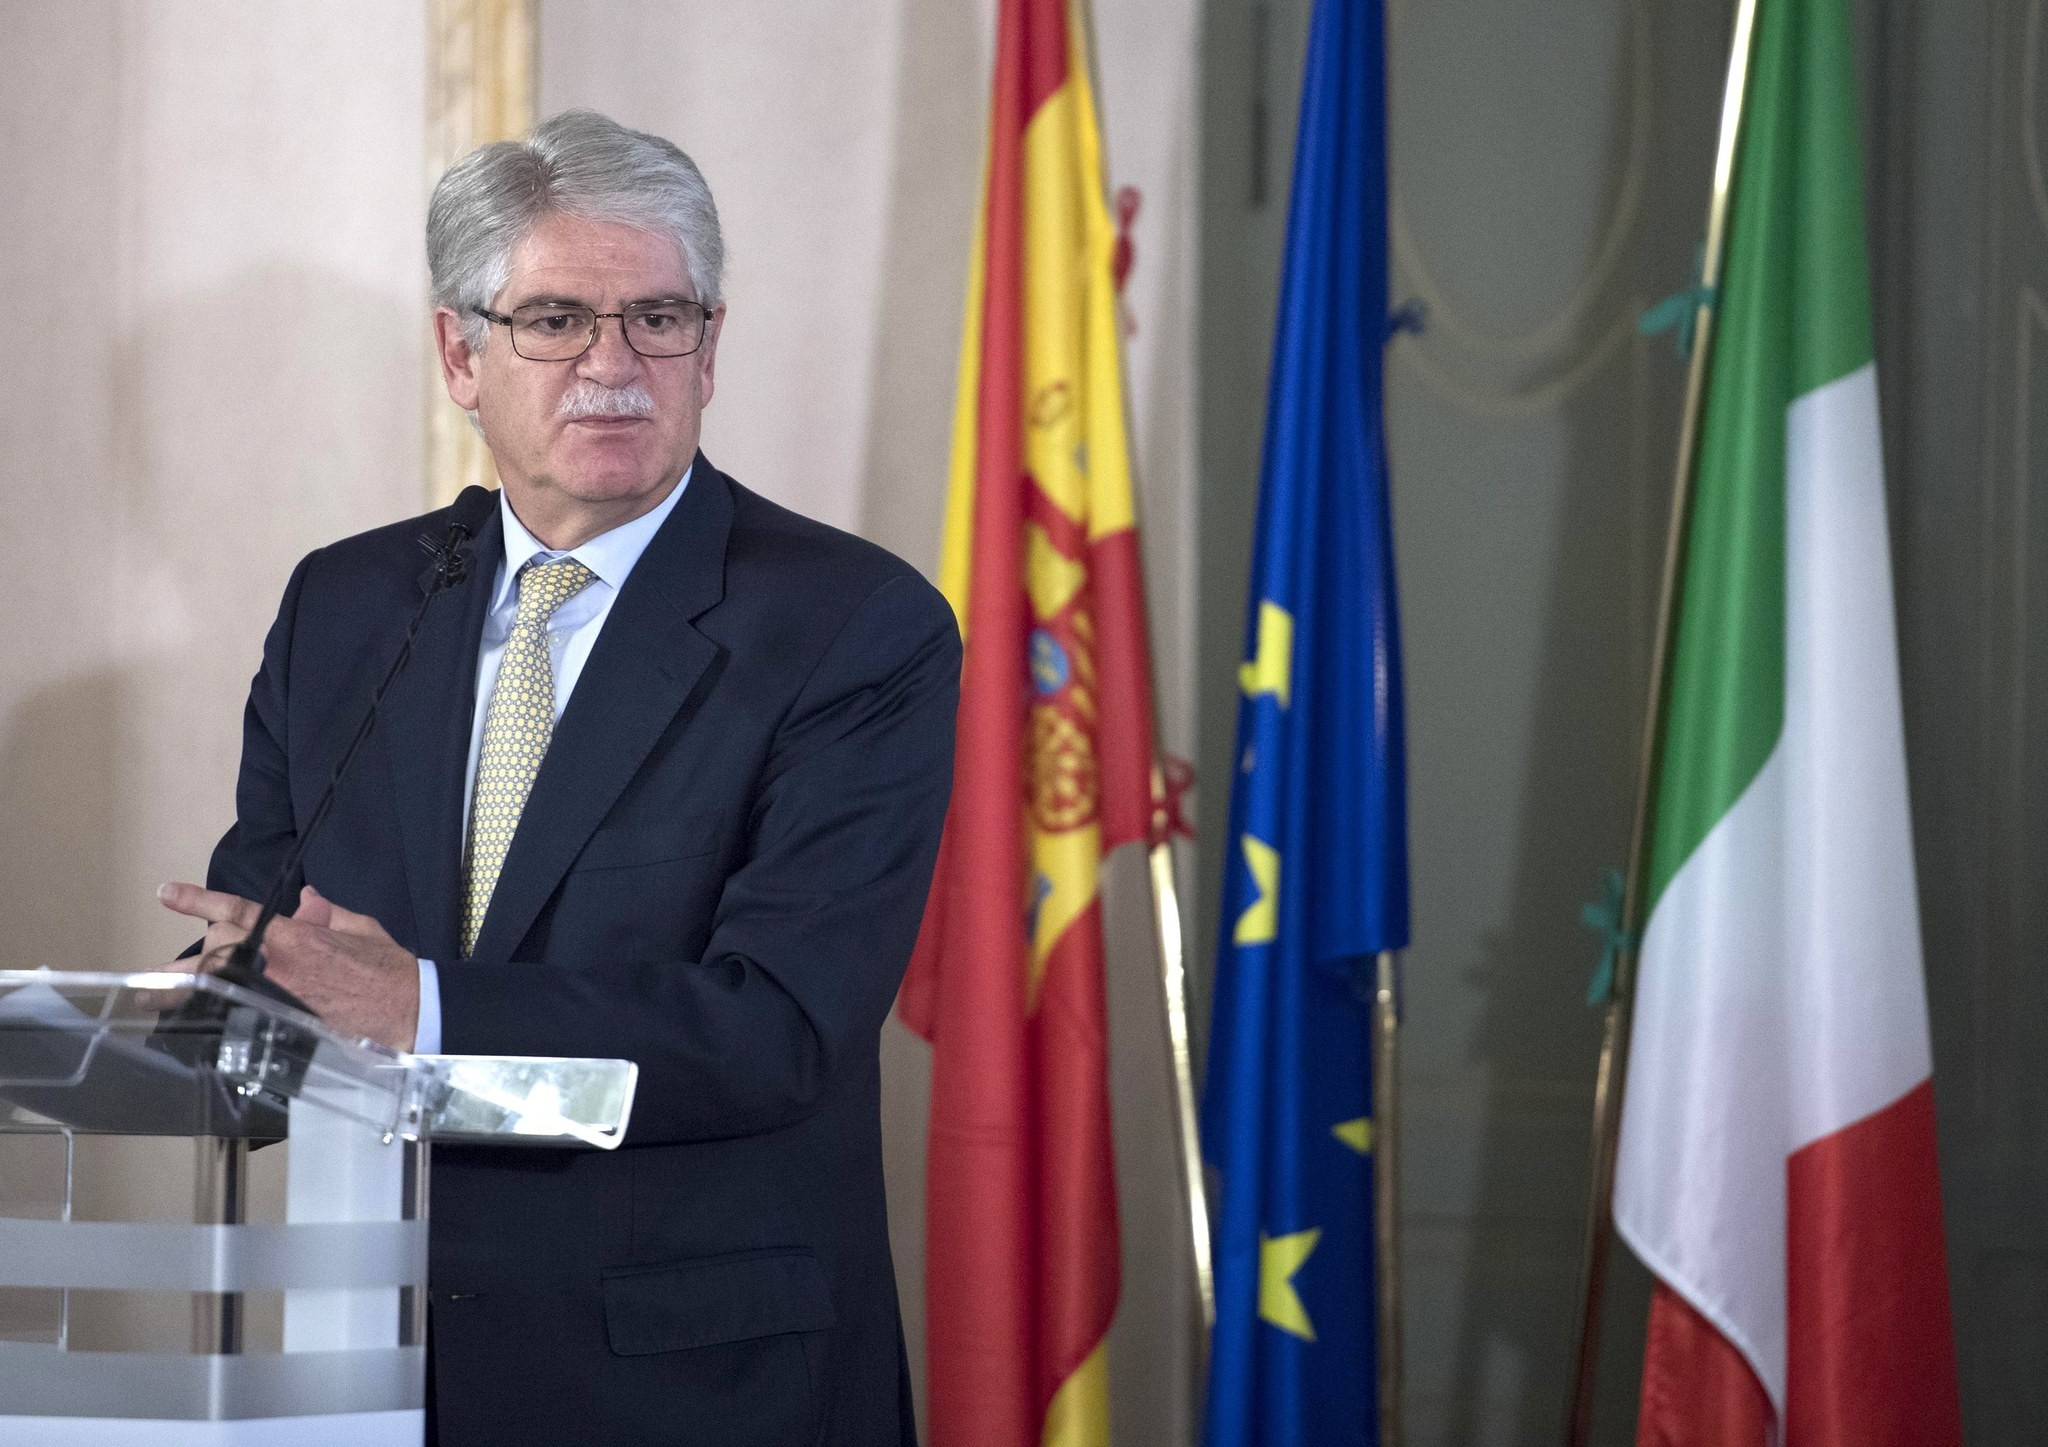 Spain's Foreign Minister, Alfonso Dastis, during his speech at the 15th Dialogue forum Italy-Spain in Rome, Italy, October 2, 2017. (EPA Photo)